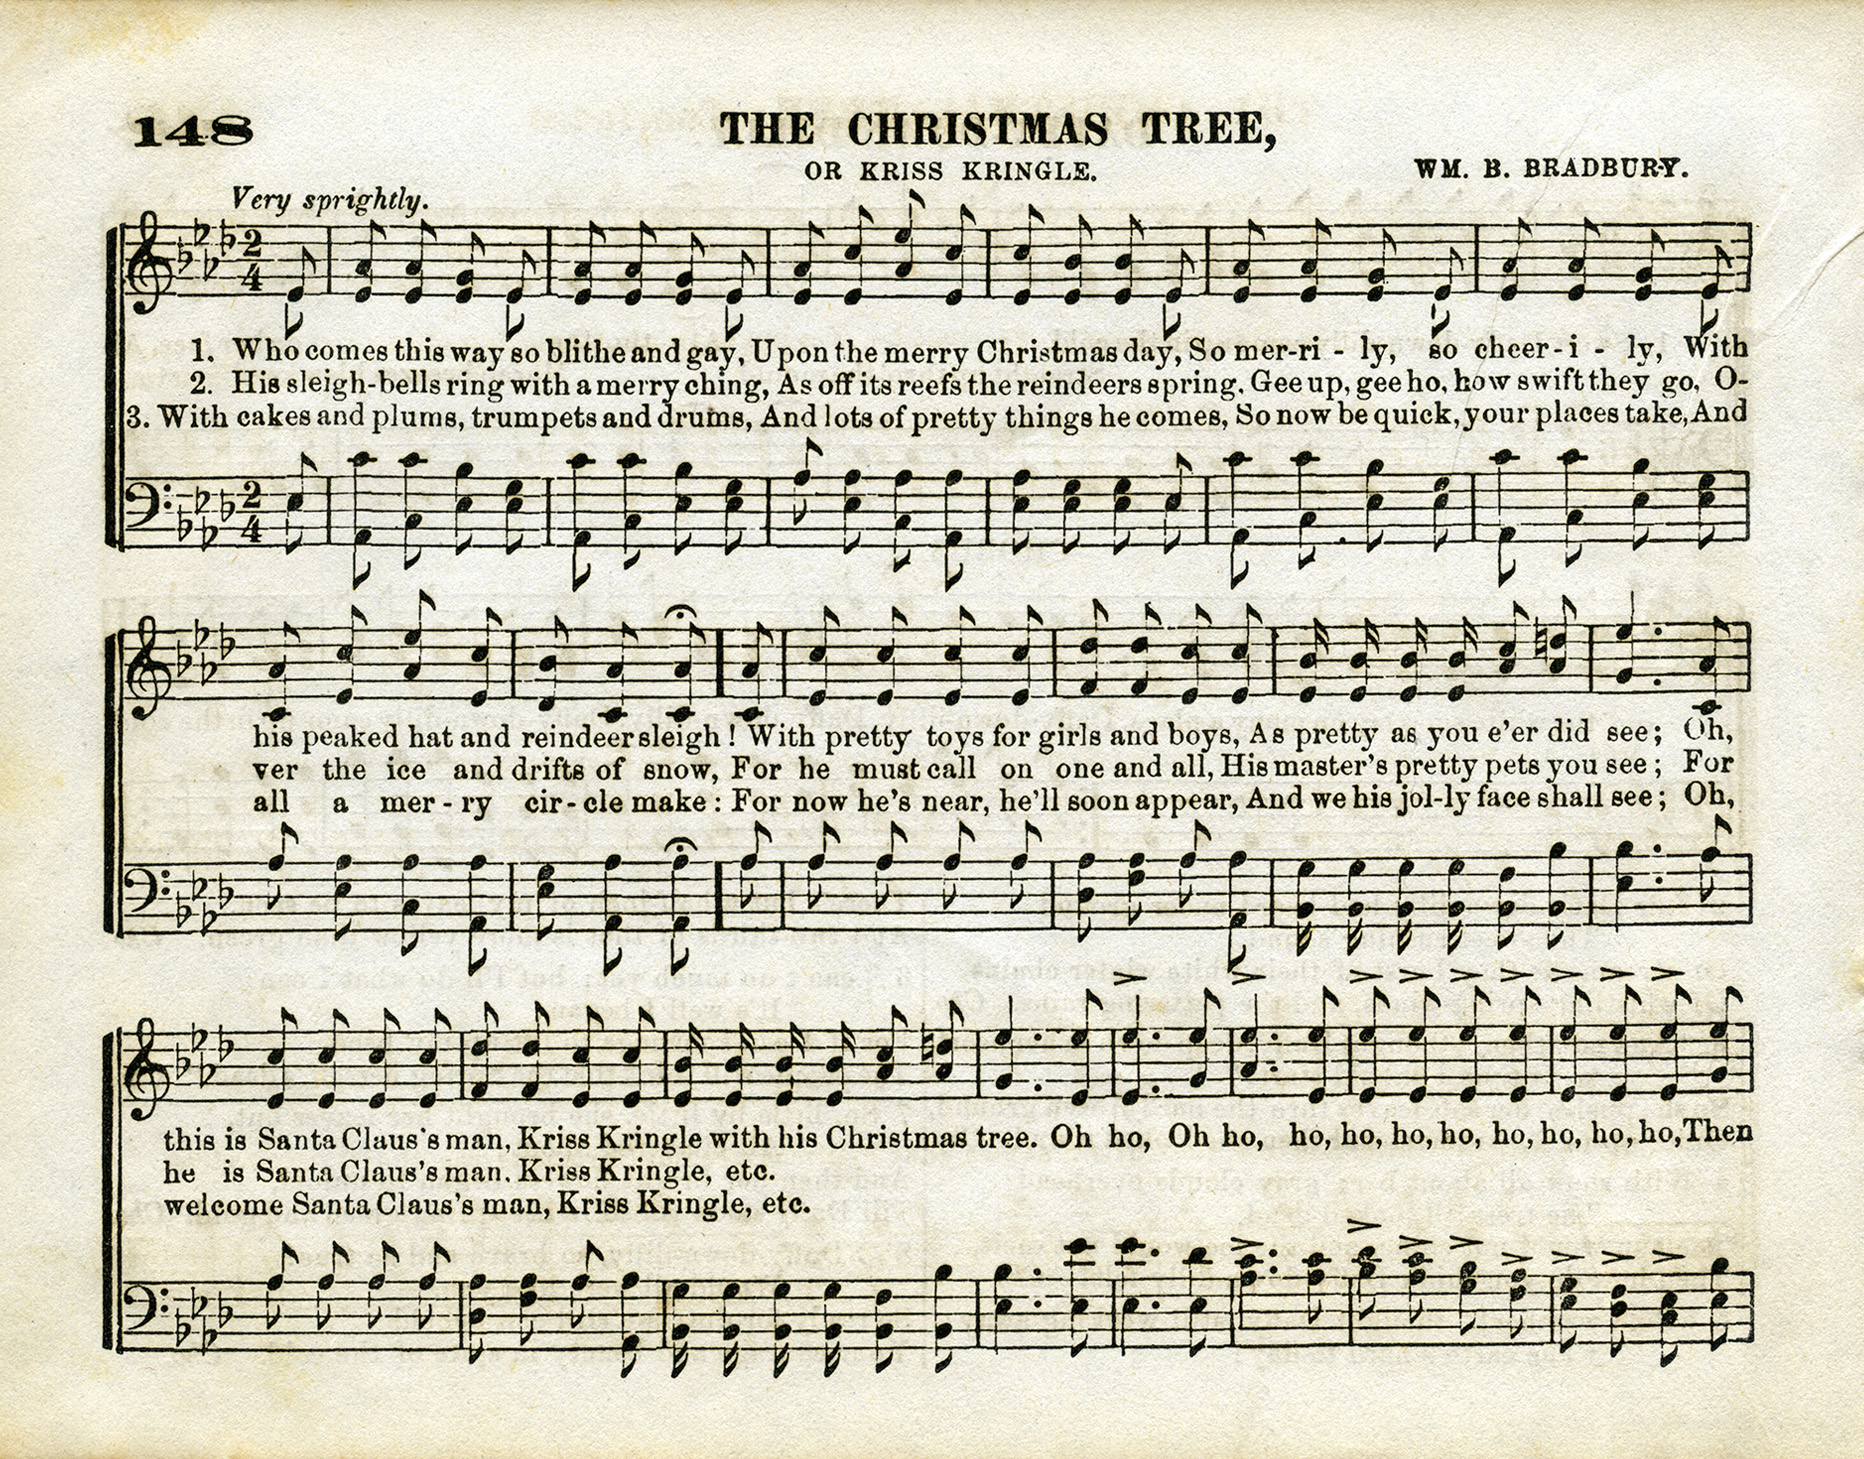 The Christmas Tree Sheet Music - Old Design Shop Blog